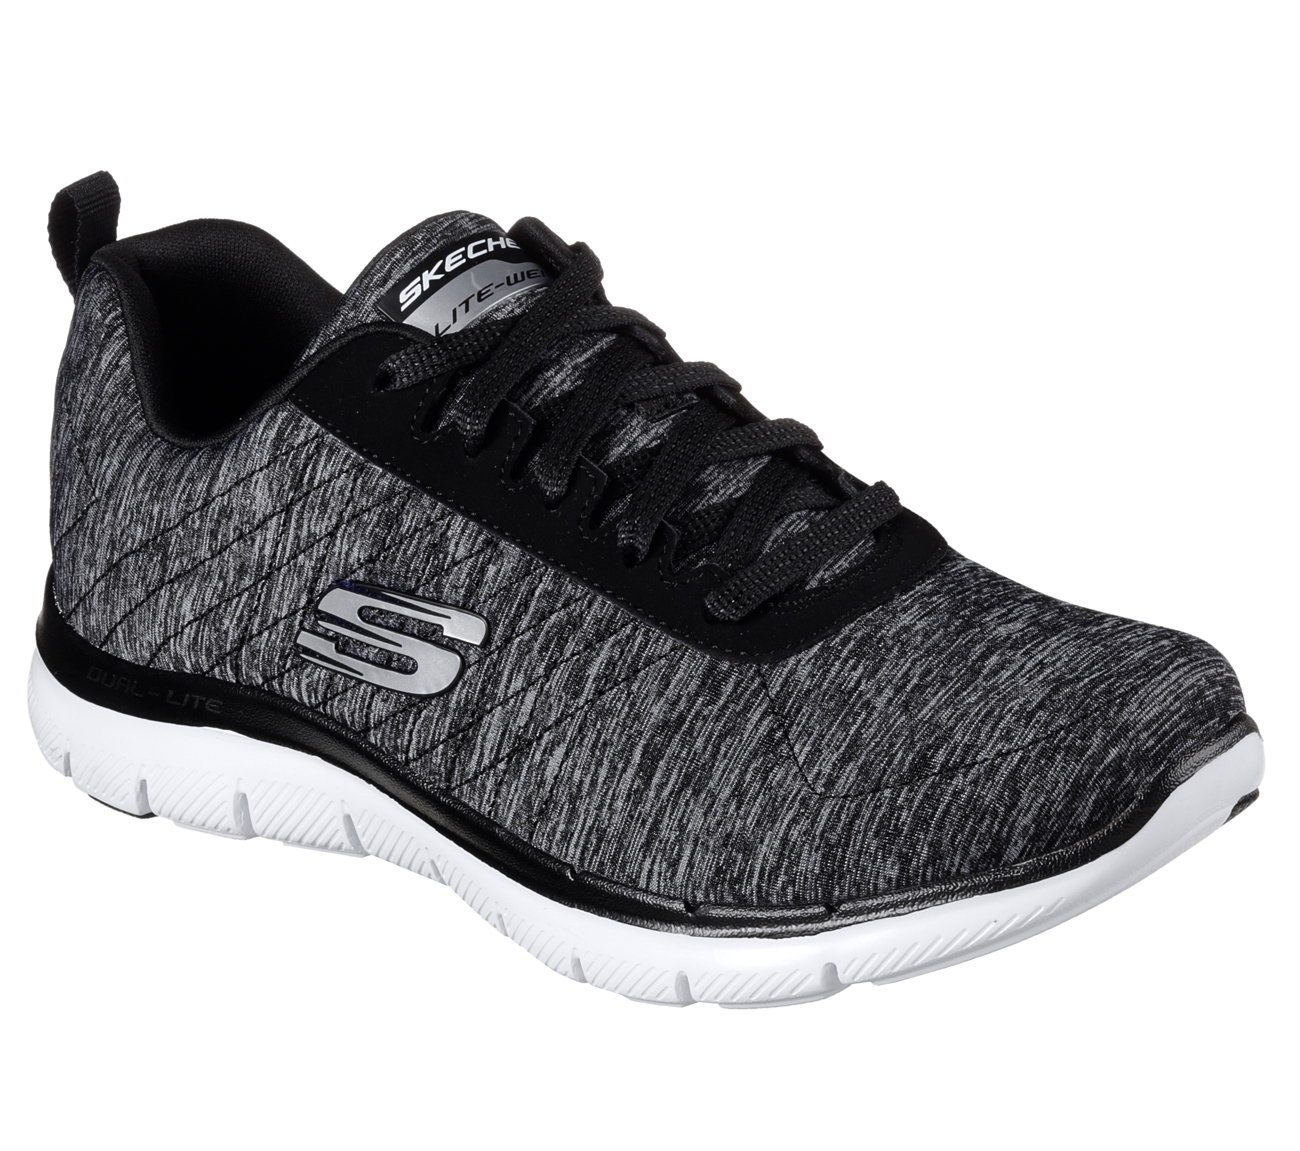 Buy SKECHERS Flex Appeal 2.0 Flex Appeal Shoes only $65.00